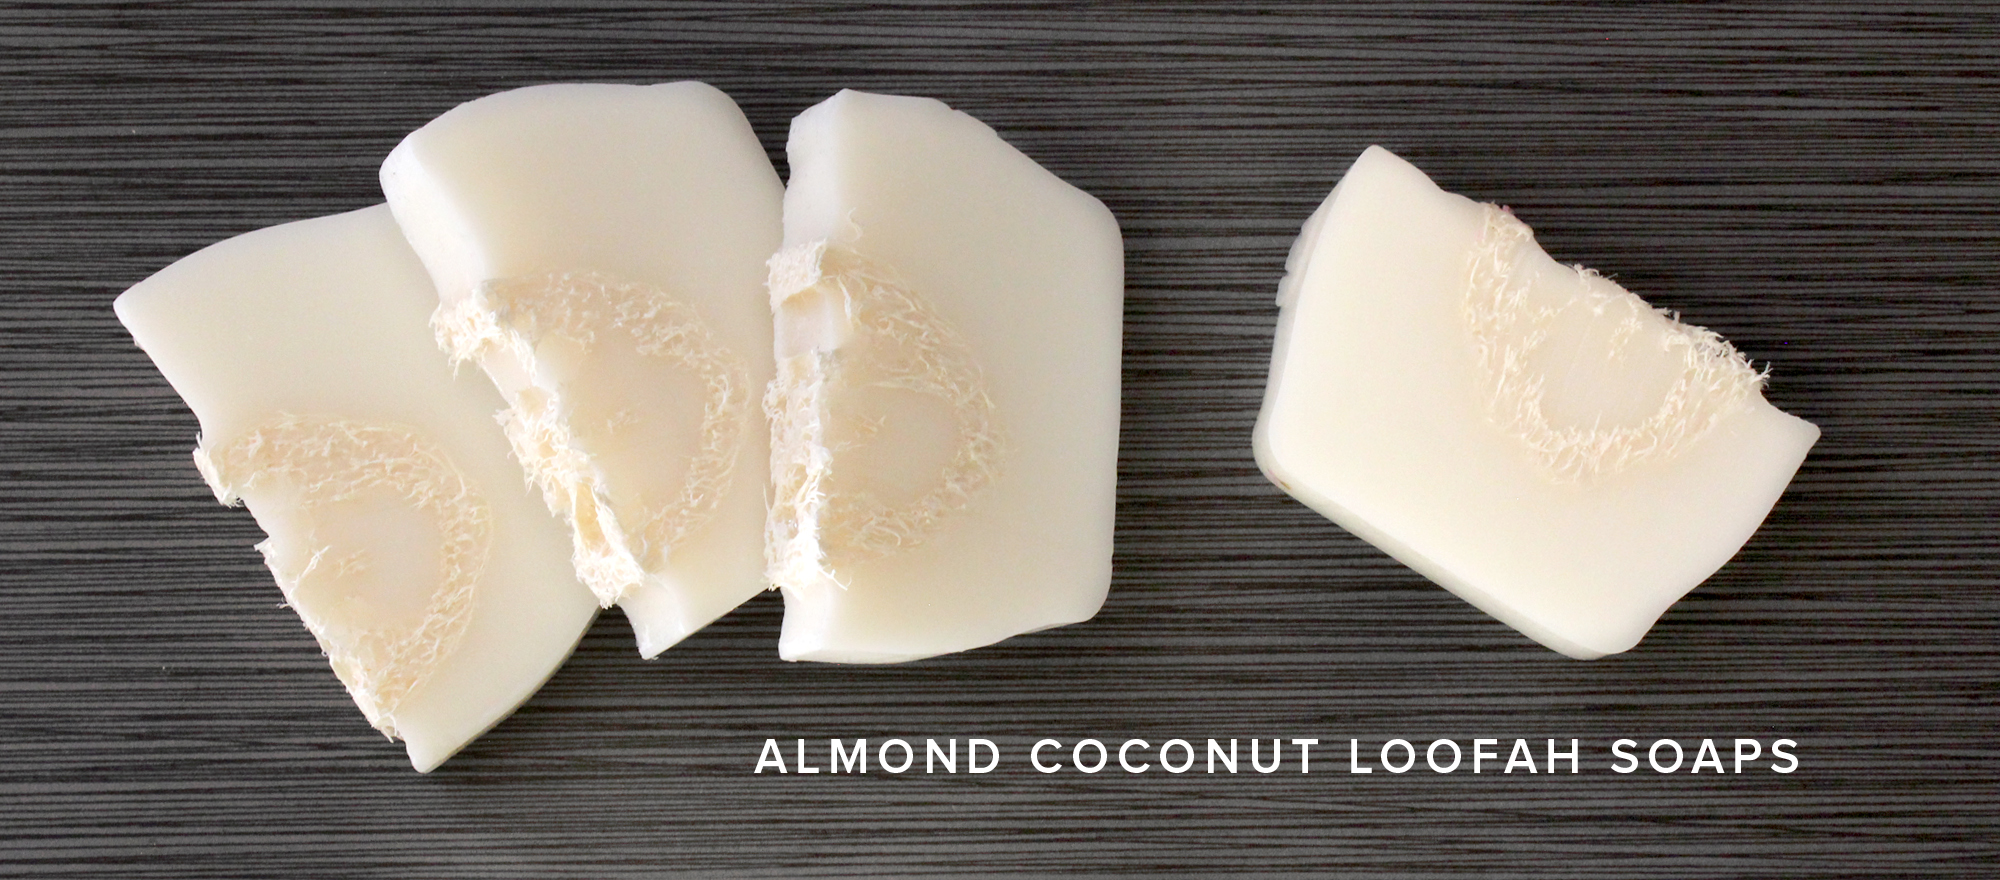 Almond Coconut Loofah Soap